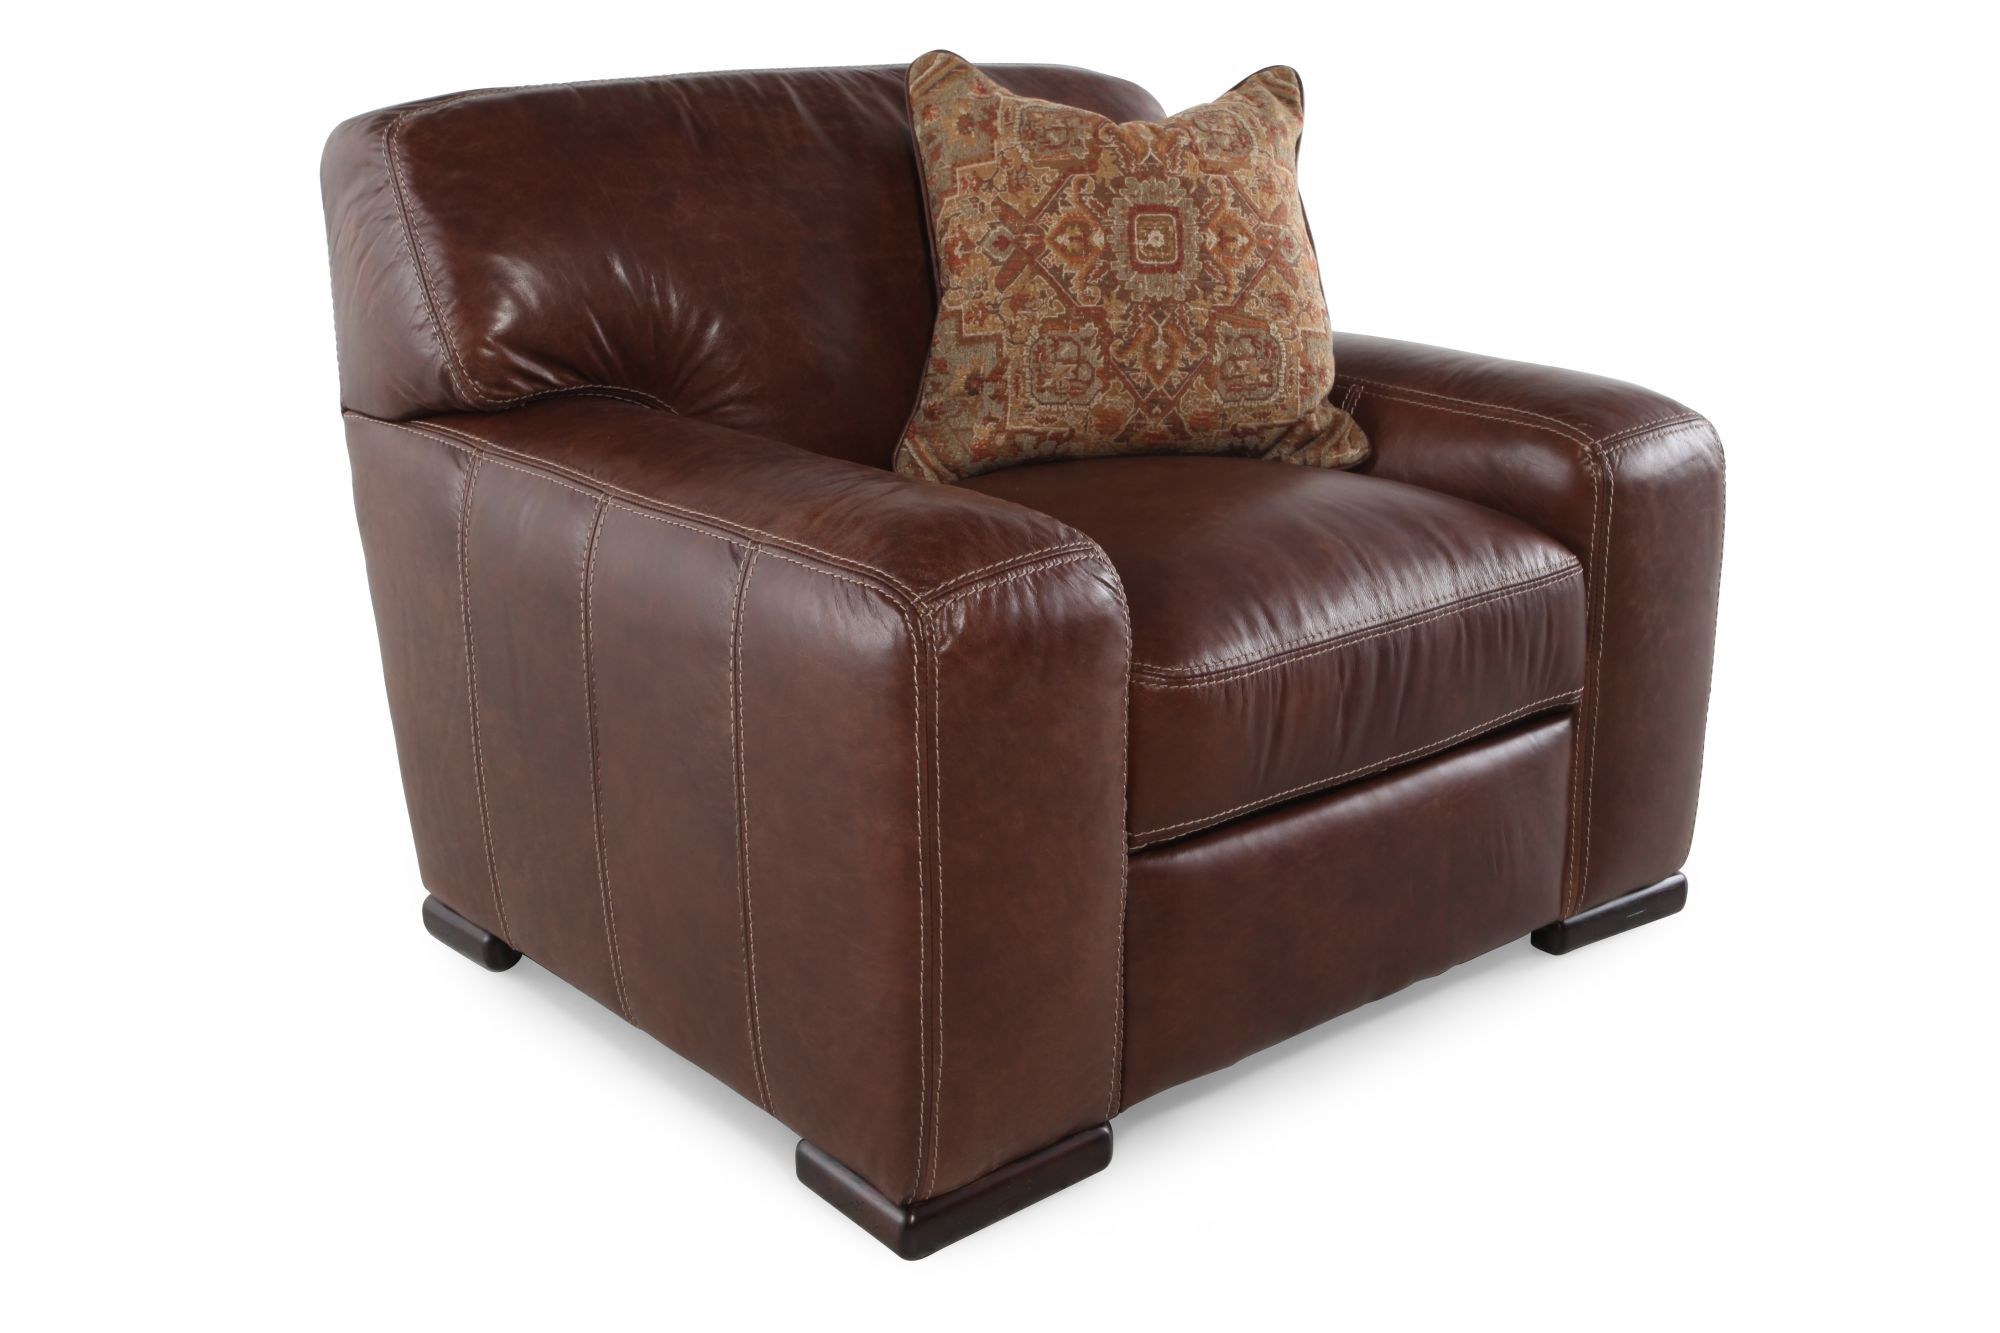 Track Arm Leather Chair In Tobacco